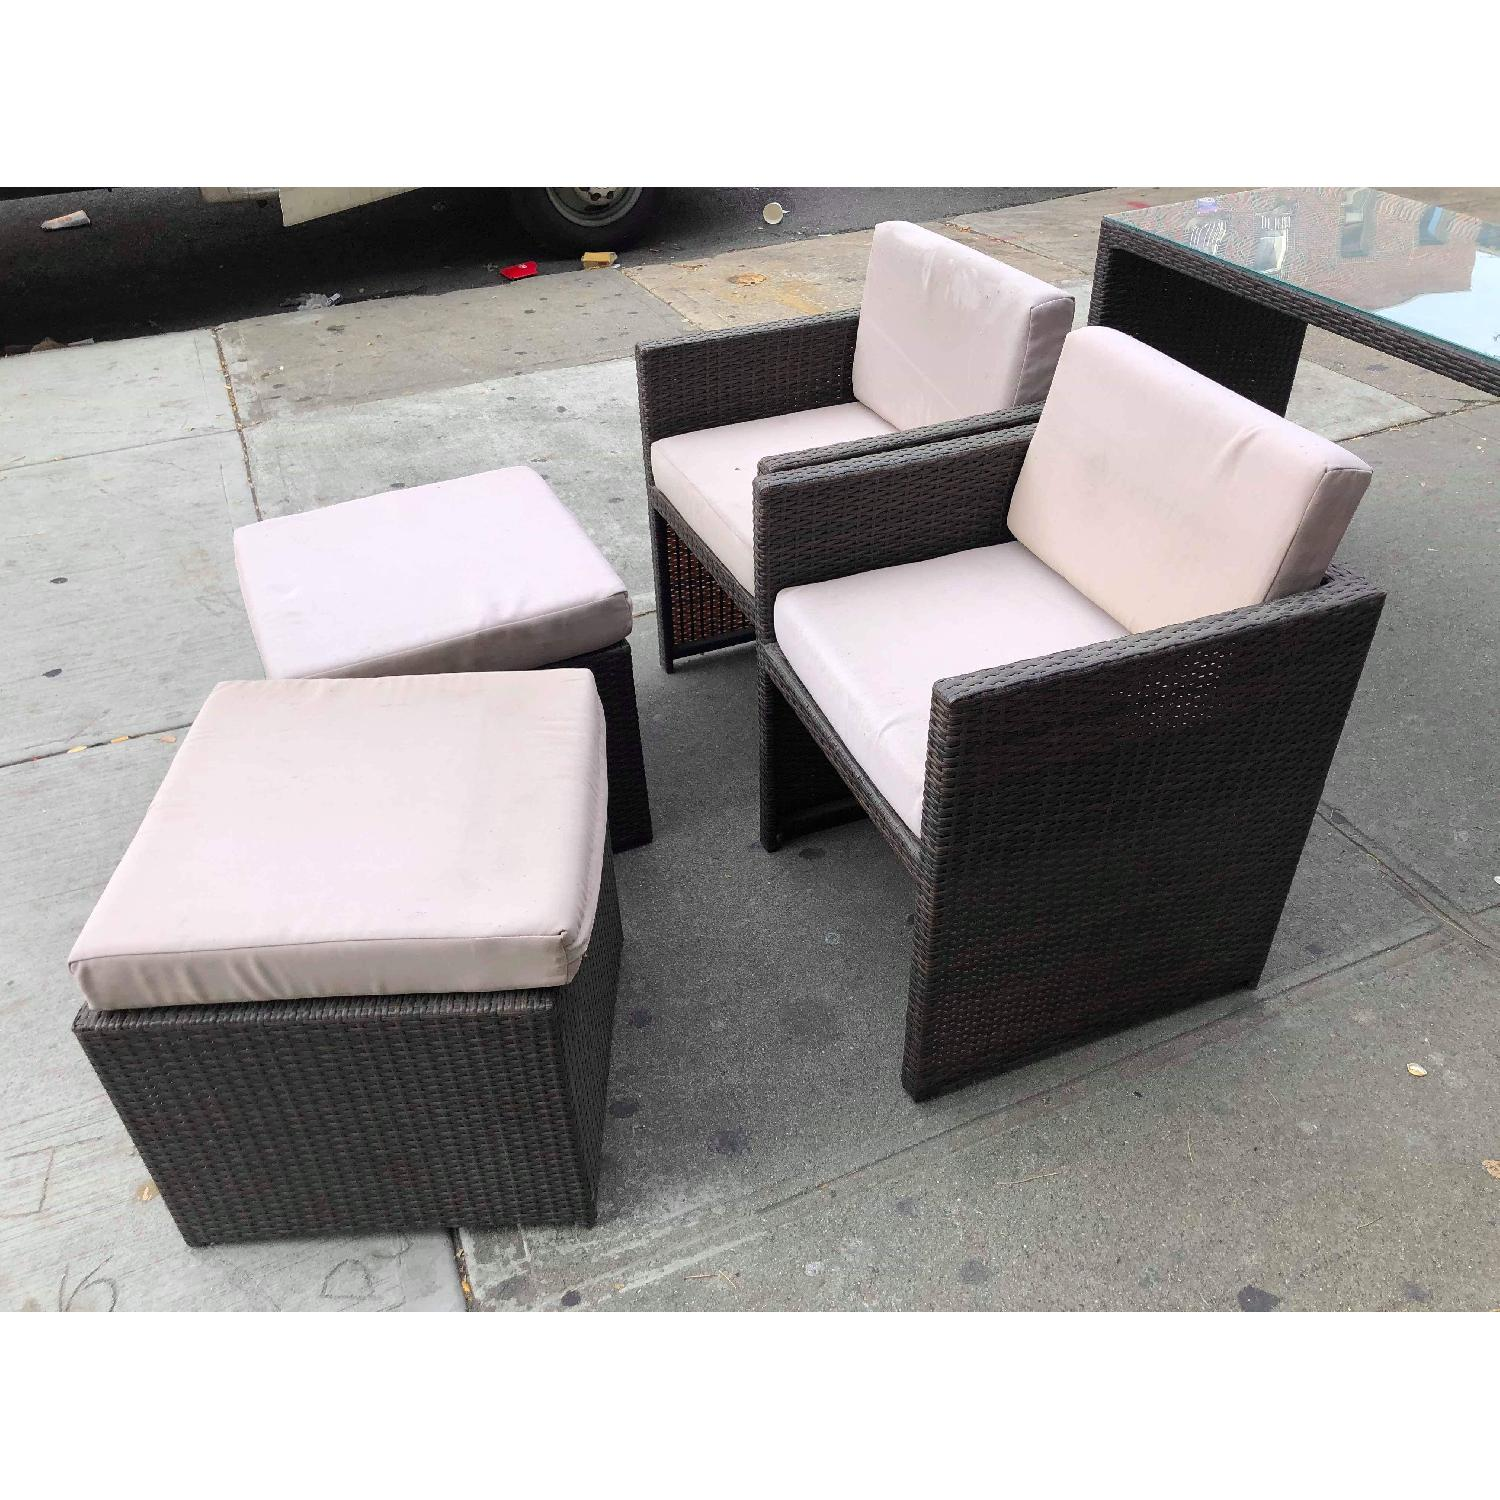 Outdoor Wicker 2 Armchairs w/ Ottomans & Table w/ Glass Top - image-19